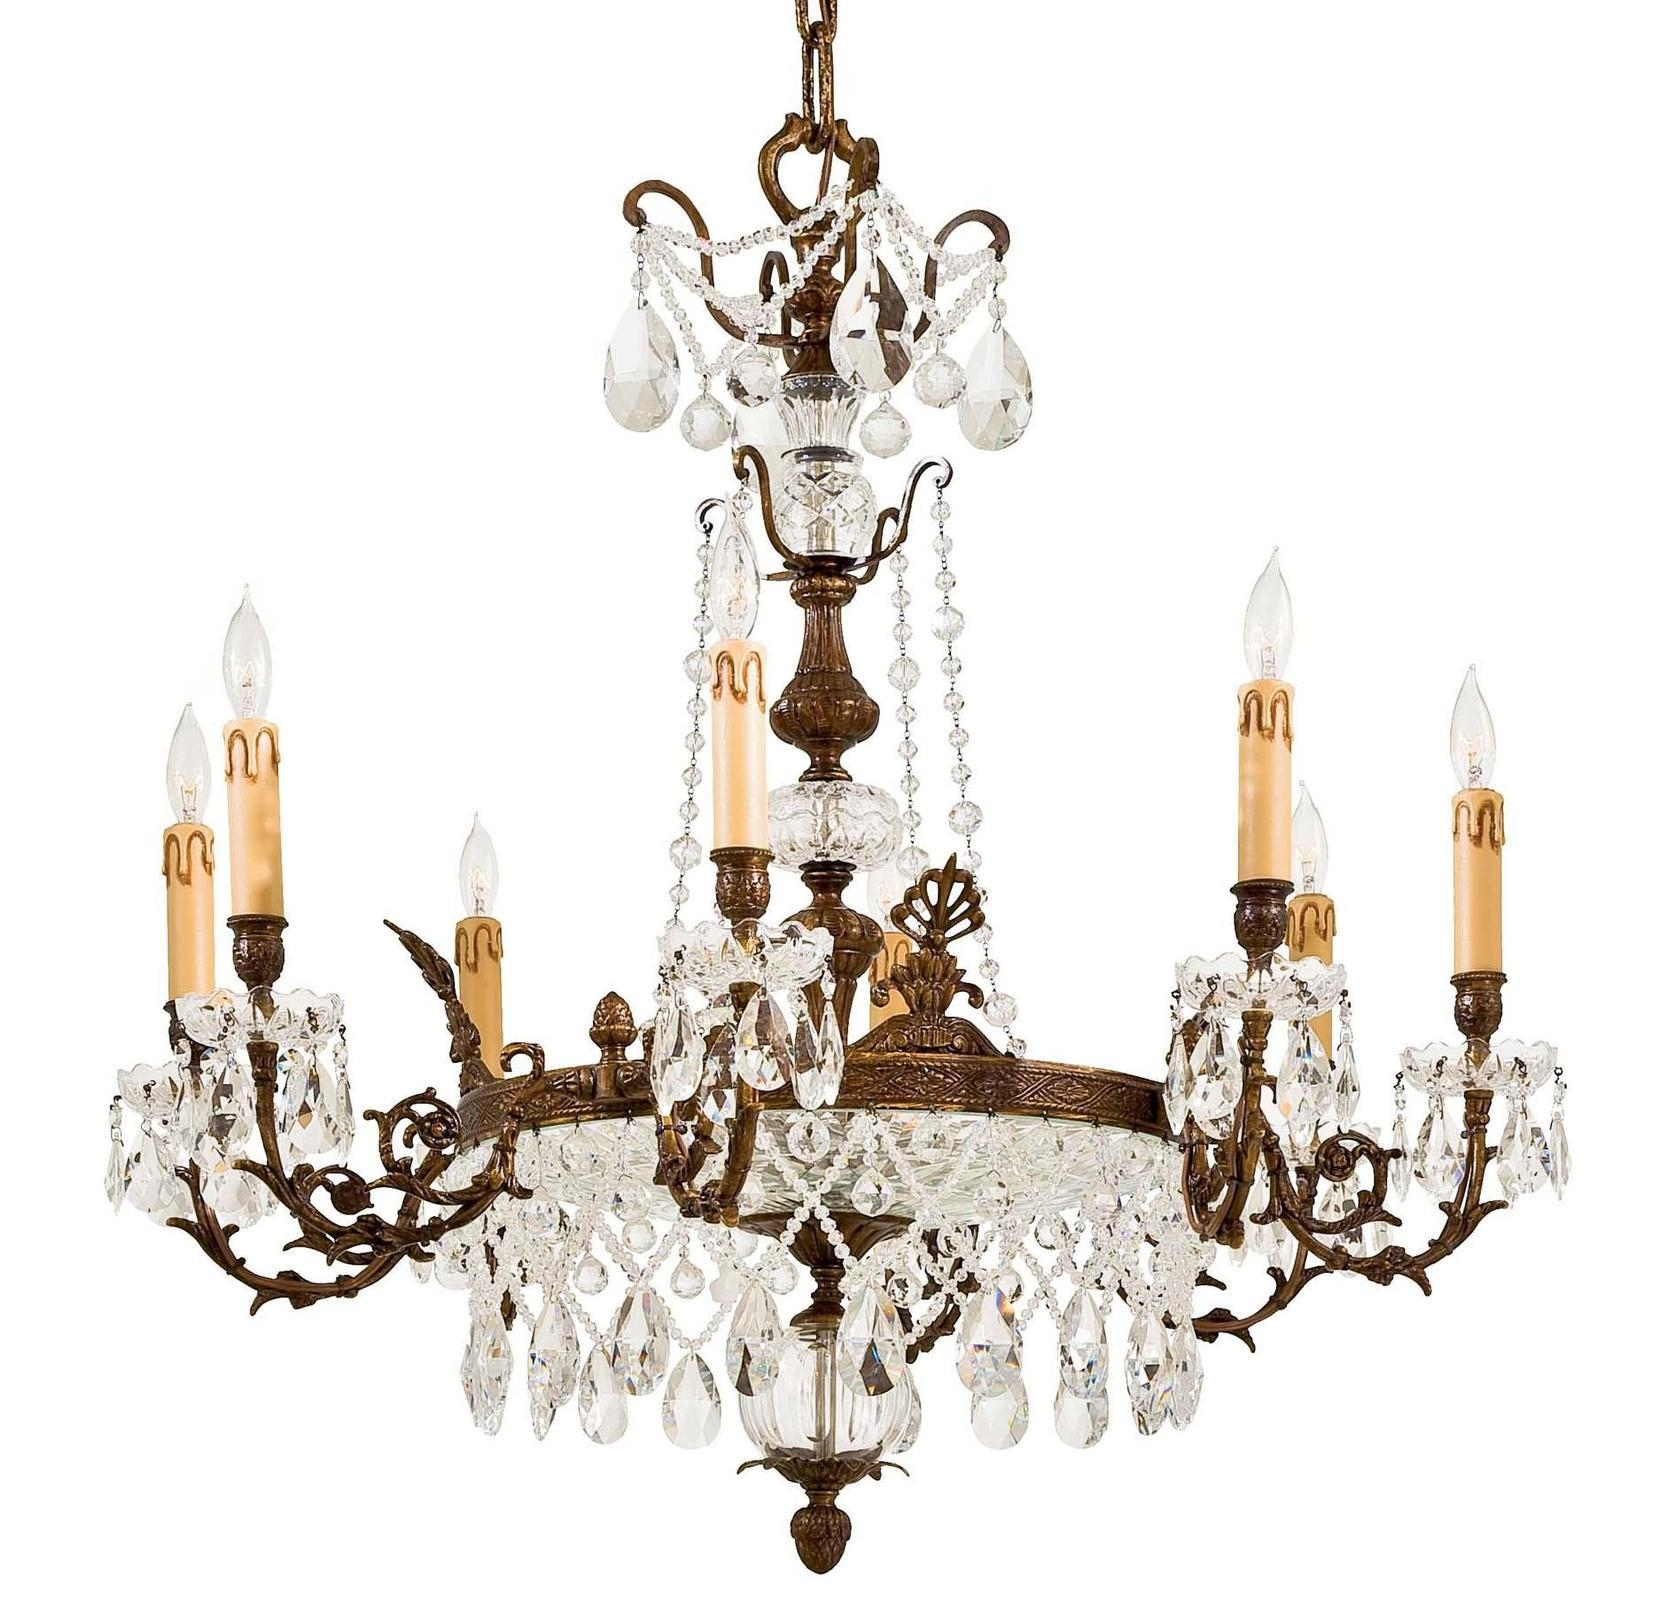 12 collection of antique mirror chandelier crystal chandelier metropolitan chandeliers crystal antique with antique mirror chandelier 3 of 12 arubaitofo Image collections